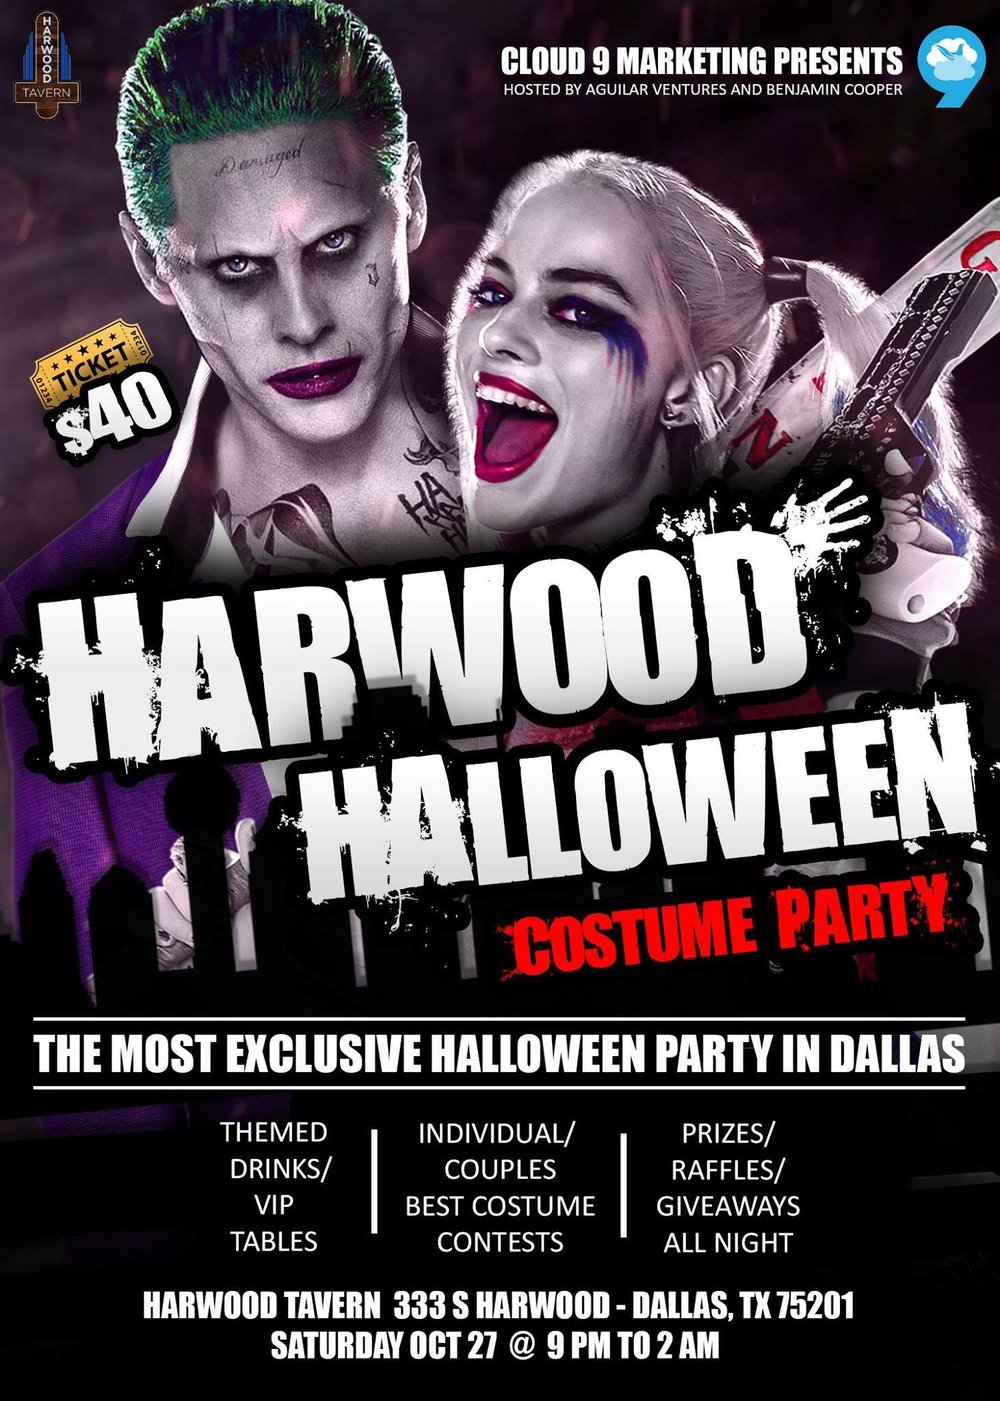 Harwood Halloween Costume Party | Harwood Tavern 10/27 - Sexy, scary, or downright cute, head to the Harwood Tavern Sports Bar Saturday, October 27th at 9 PM for the Harwood Halloween Costume Party. Come solo or with your boo for the crowning of best individual costume as well as best couples costume. Harwood plans to offer spooky themed drinks, raffles and prizes every hour, professionally done photographs for your night to remember, and indoor and outdoor party areas for guests to mingle.